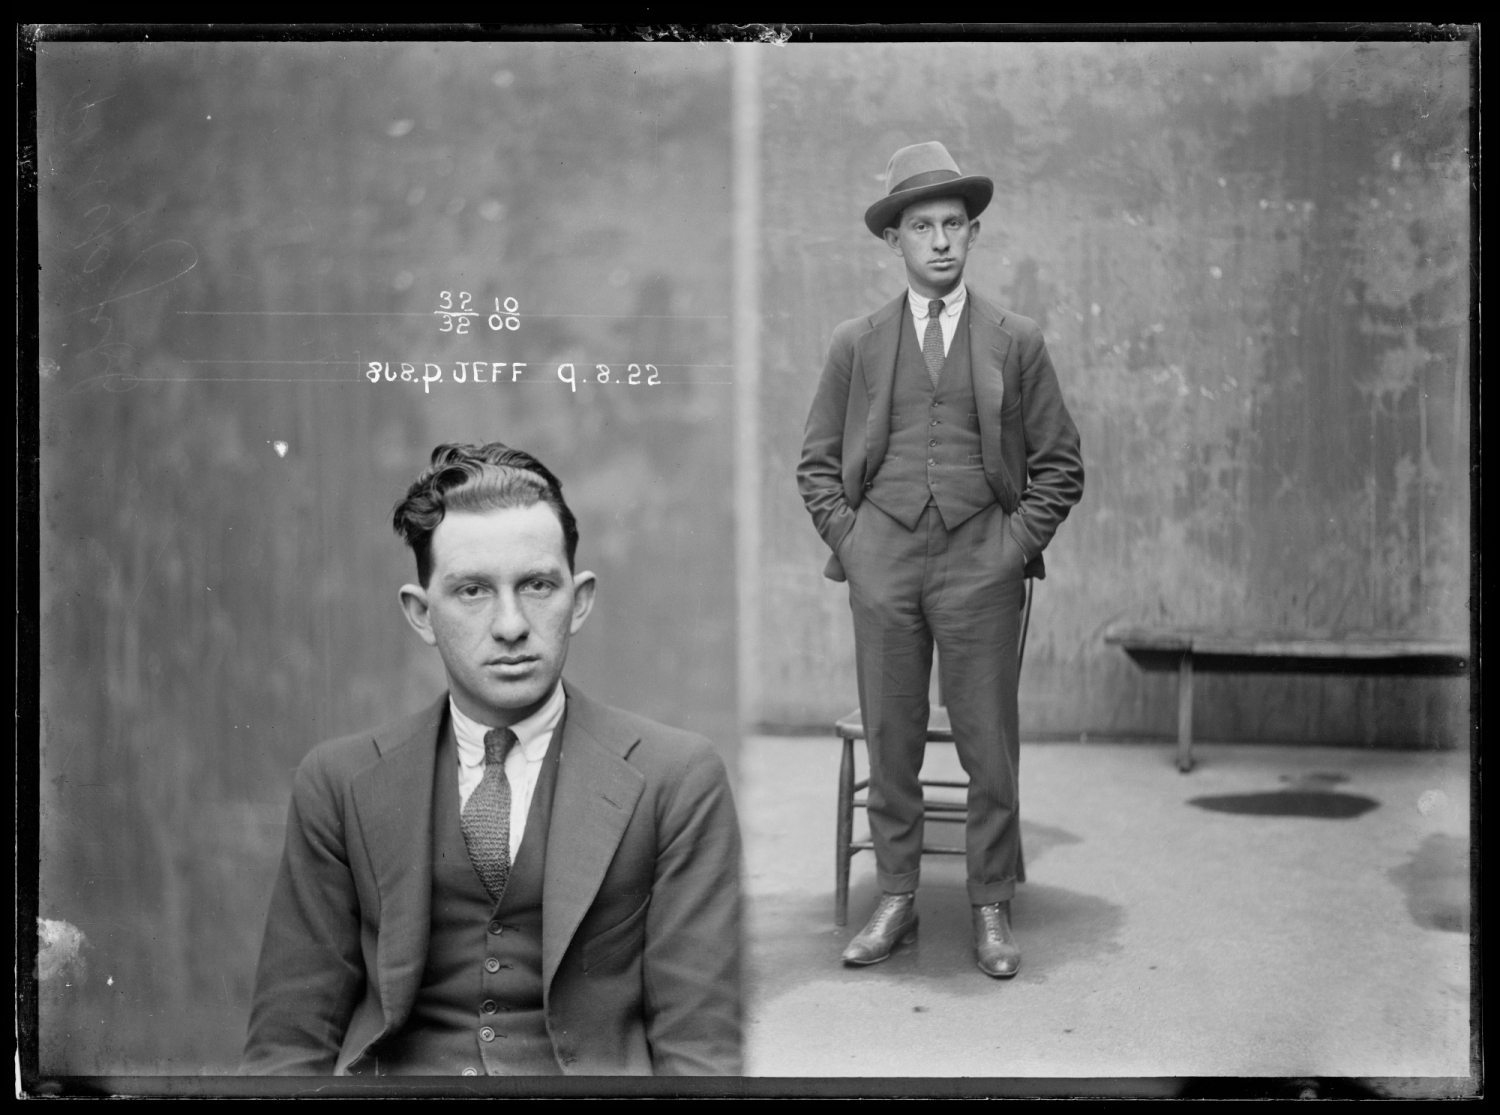 Phil Jeffs, Special Photograph number 868, 9 August 1922, Central Police Station, Sydney